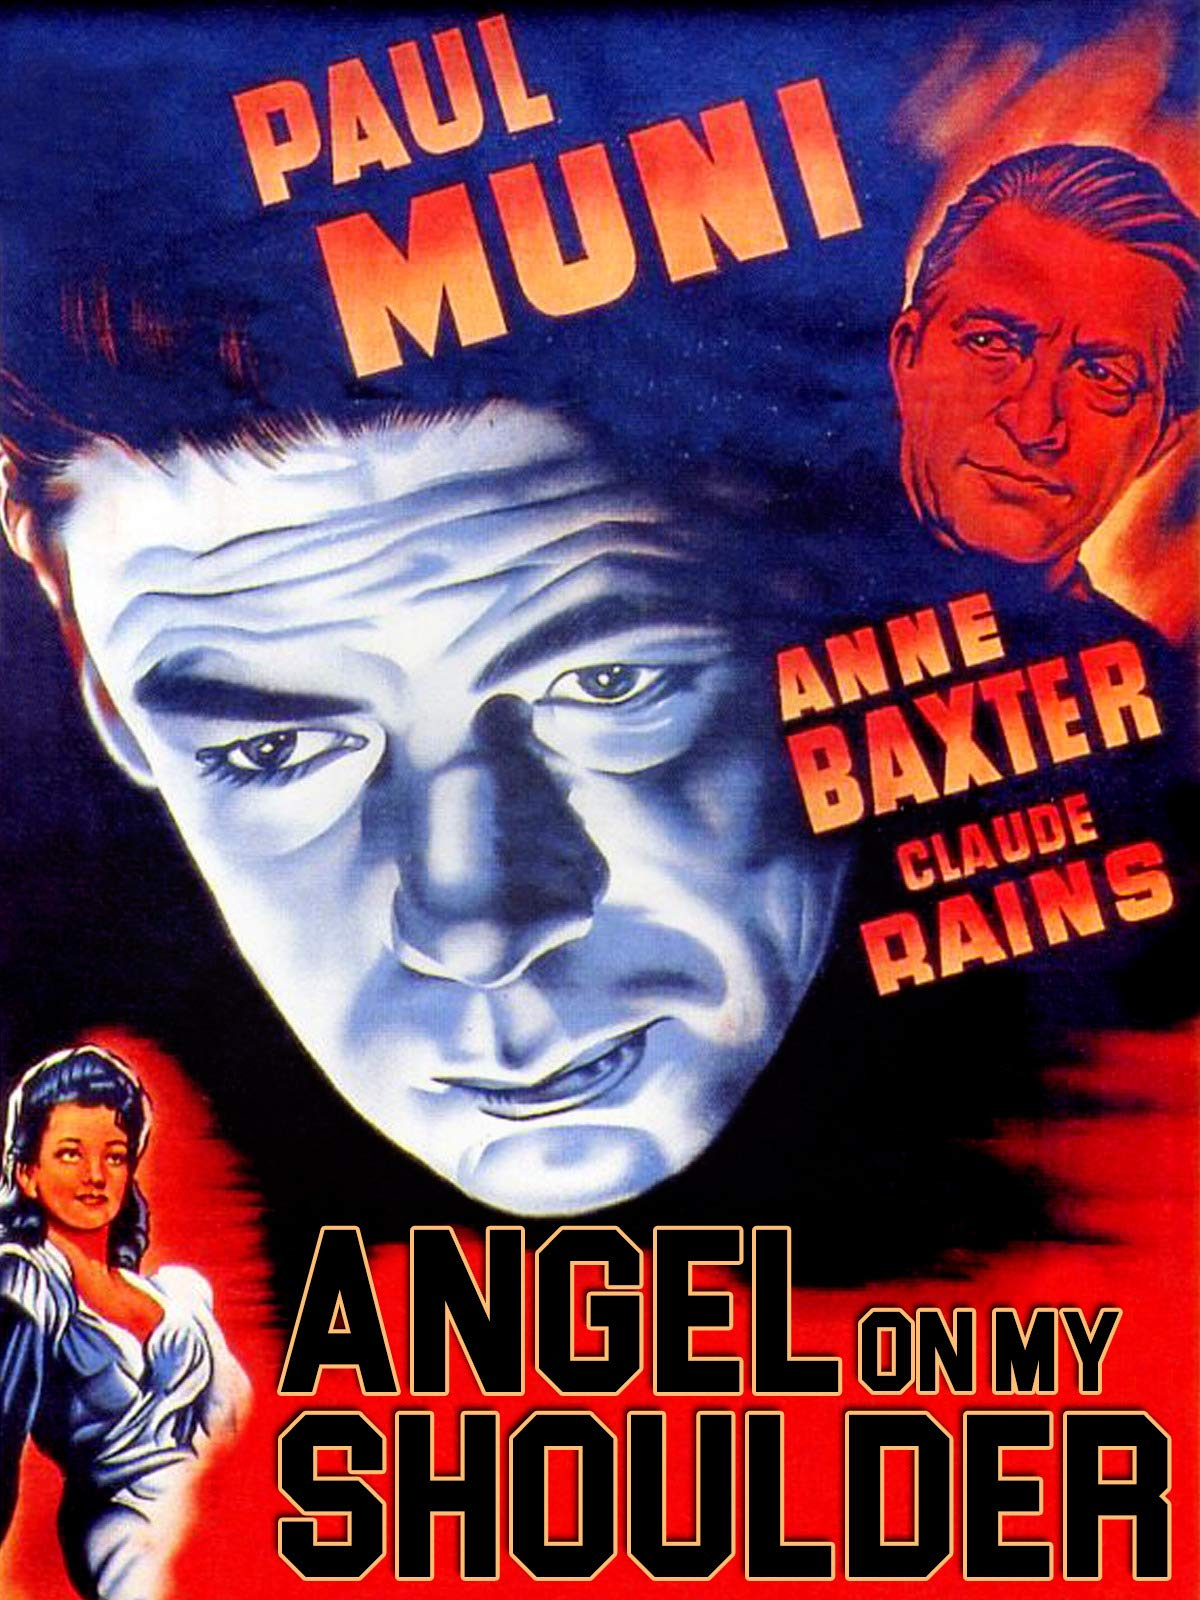 Angel On My Shoulder - Paul Muni, Anne Baxter, Claude Rains